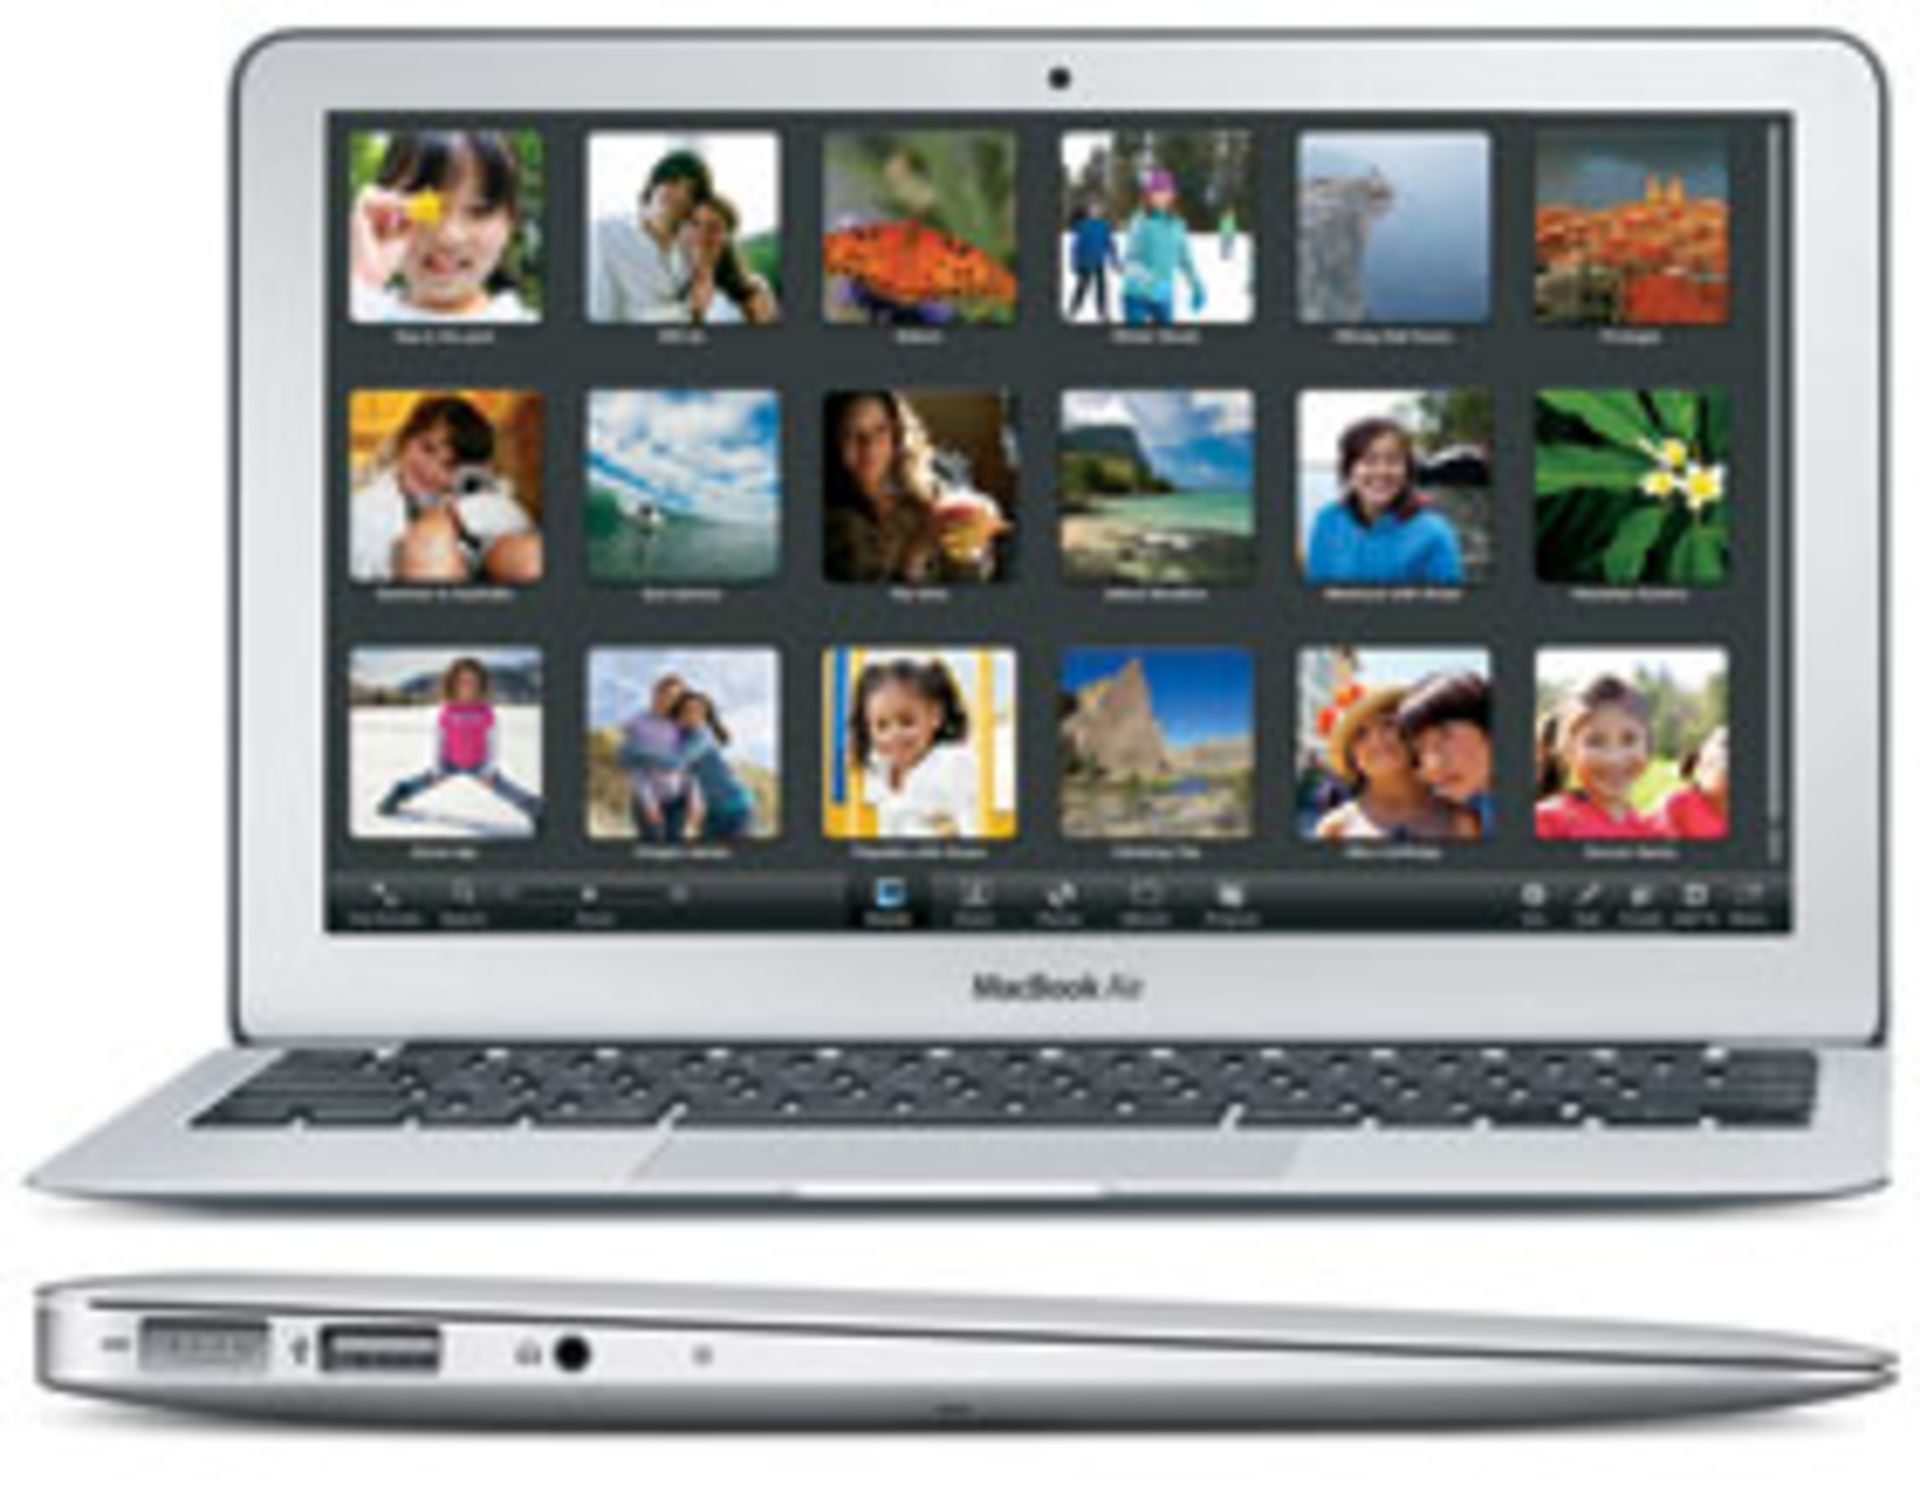 Lot 60023 - V Grade B Macbook Air 11.6 Inch Core 2 Duo - 64GB SSD - A1370 - Available Approx 7 Working Days